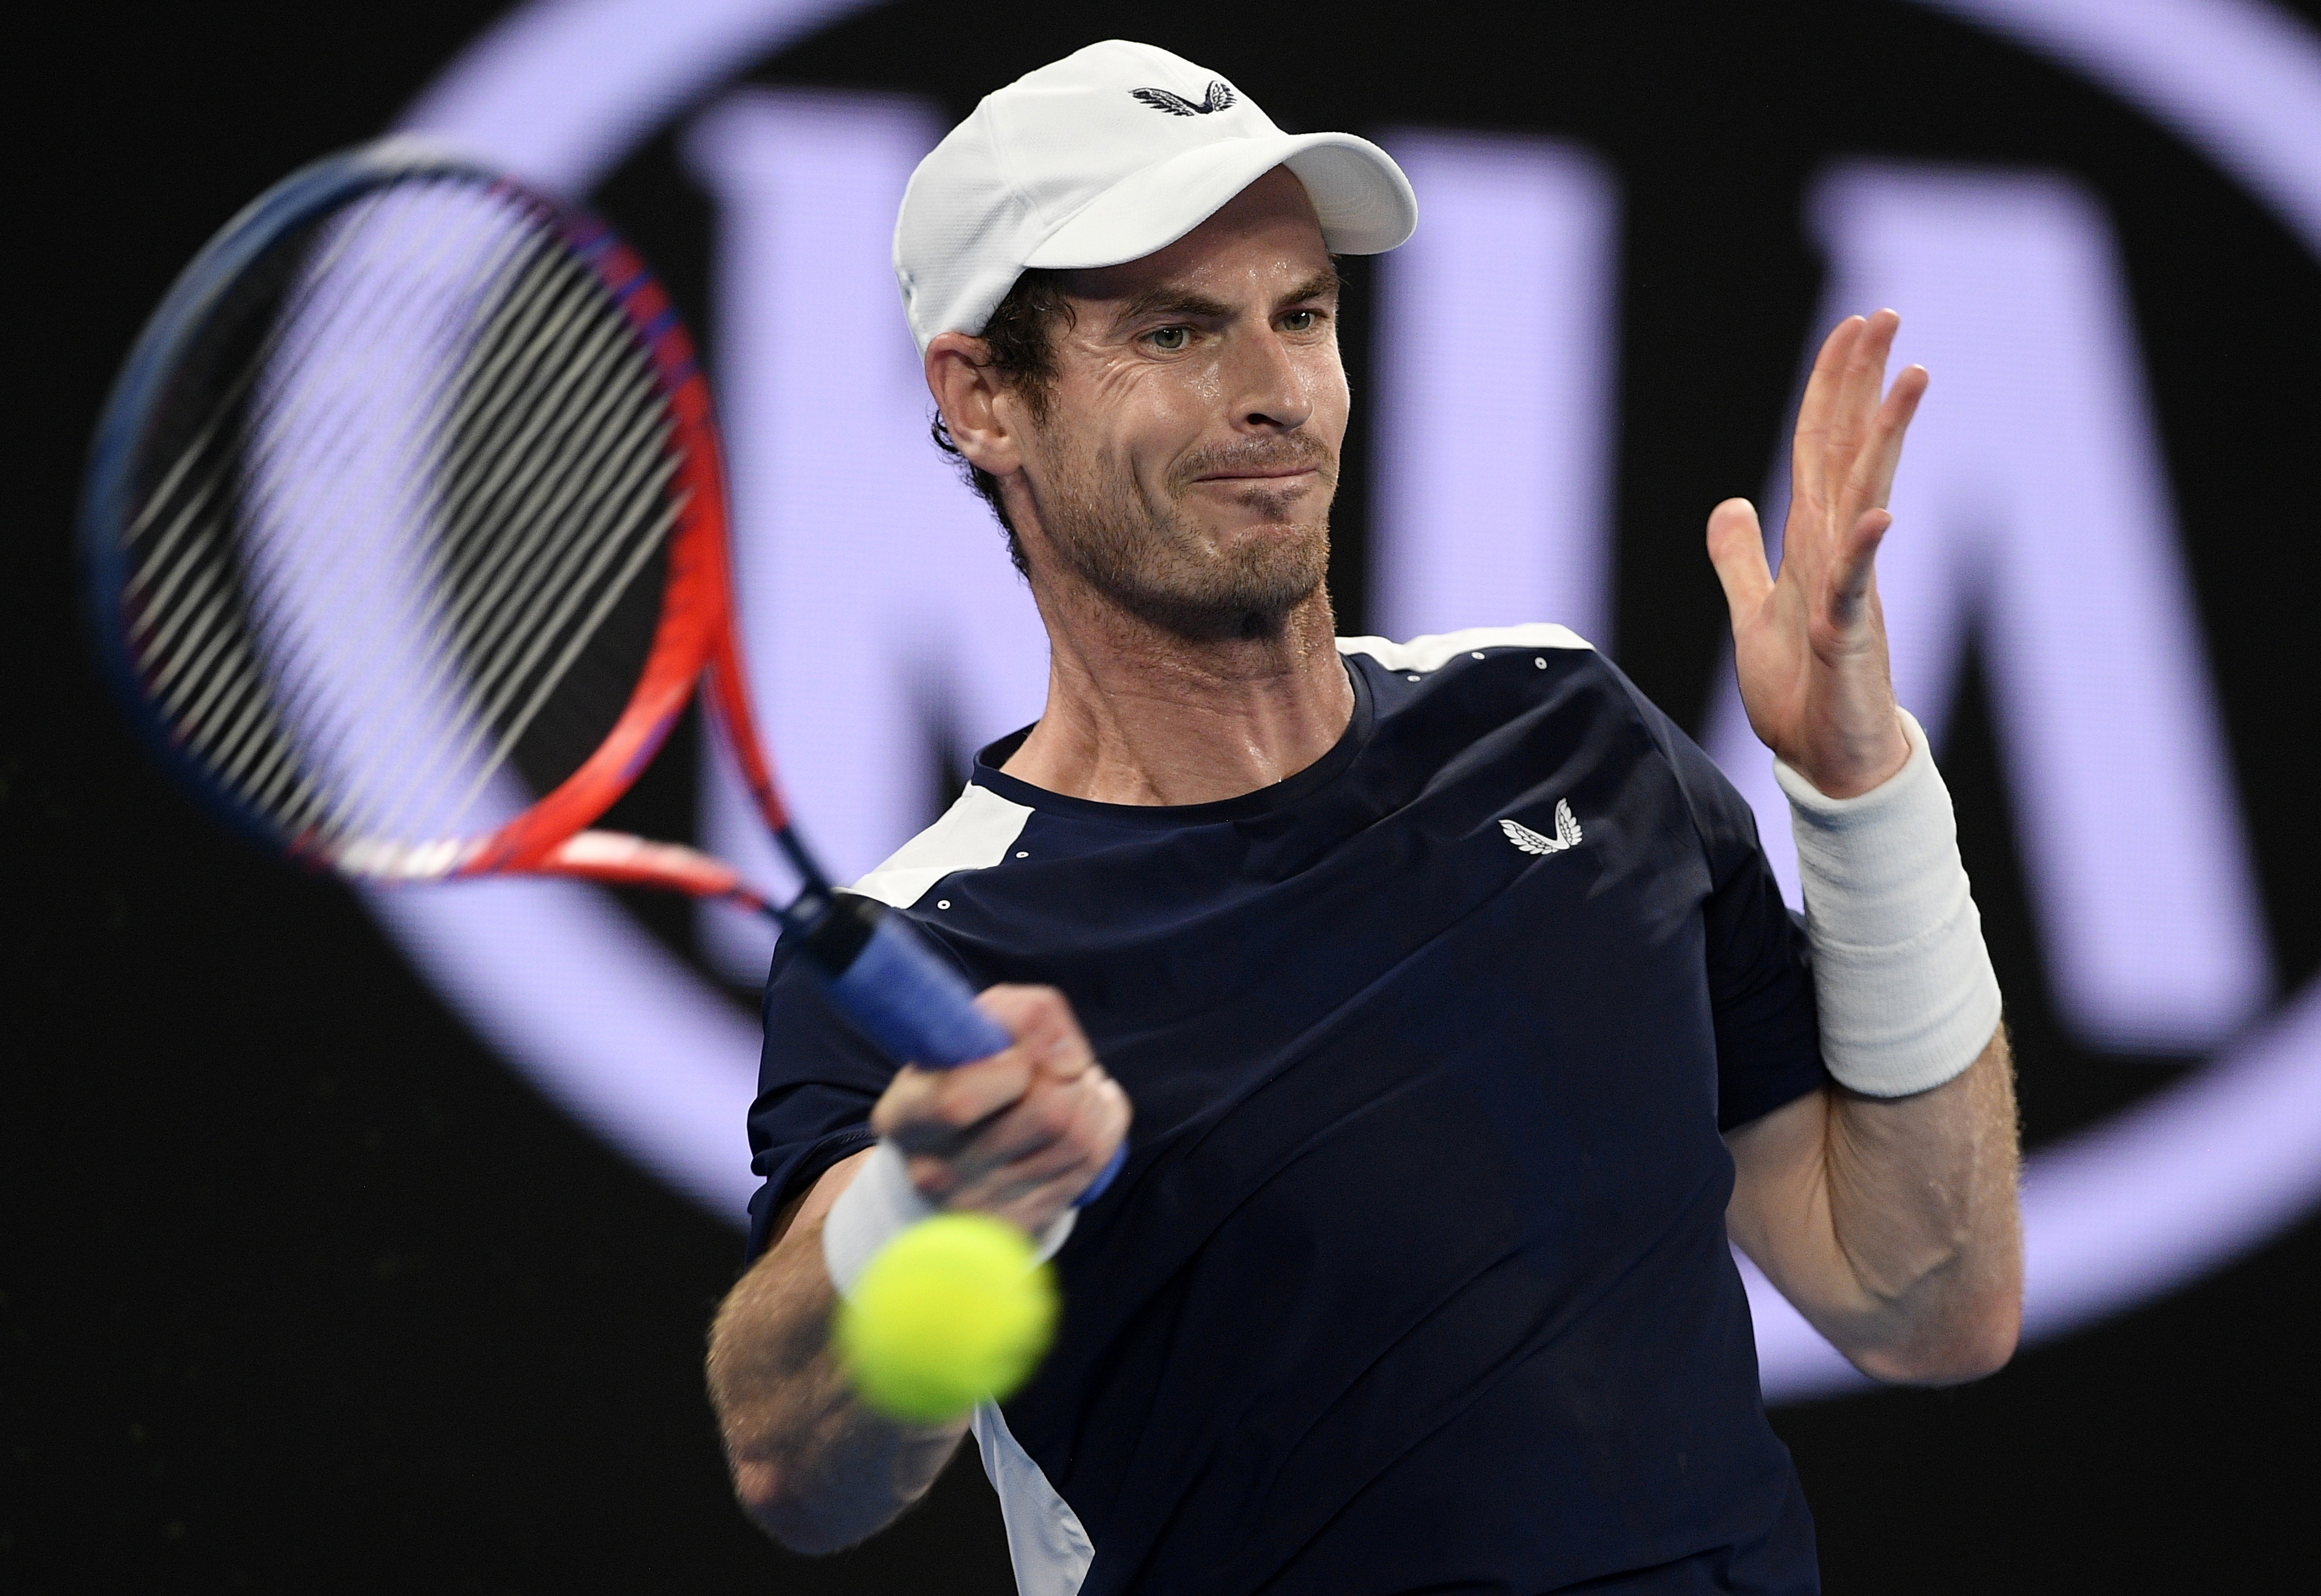 Out and likely over for Murray at Aussie Open